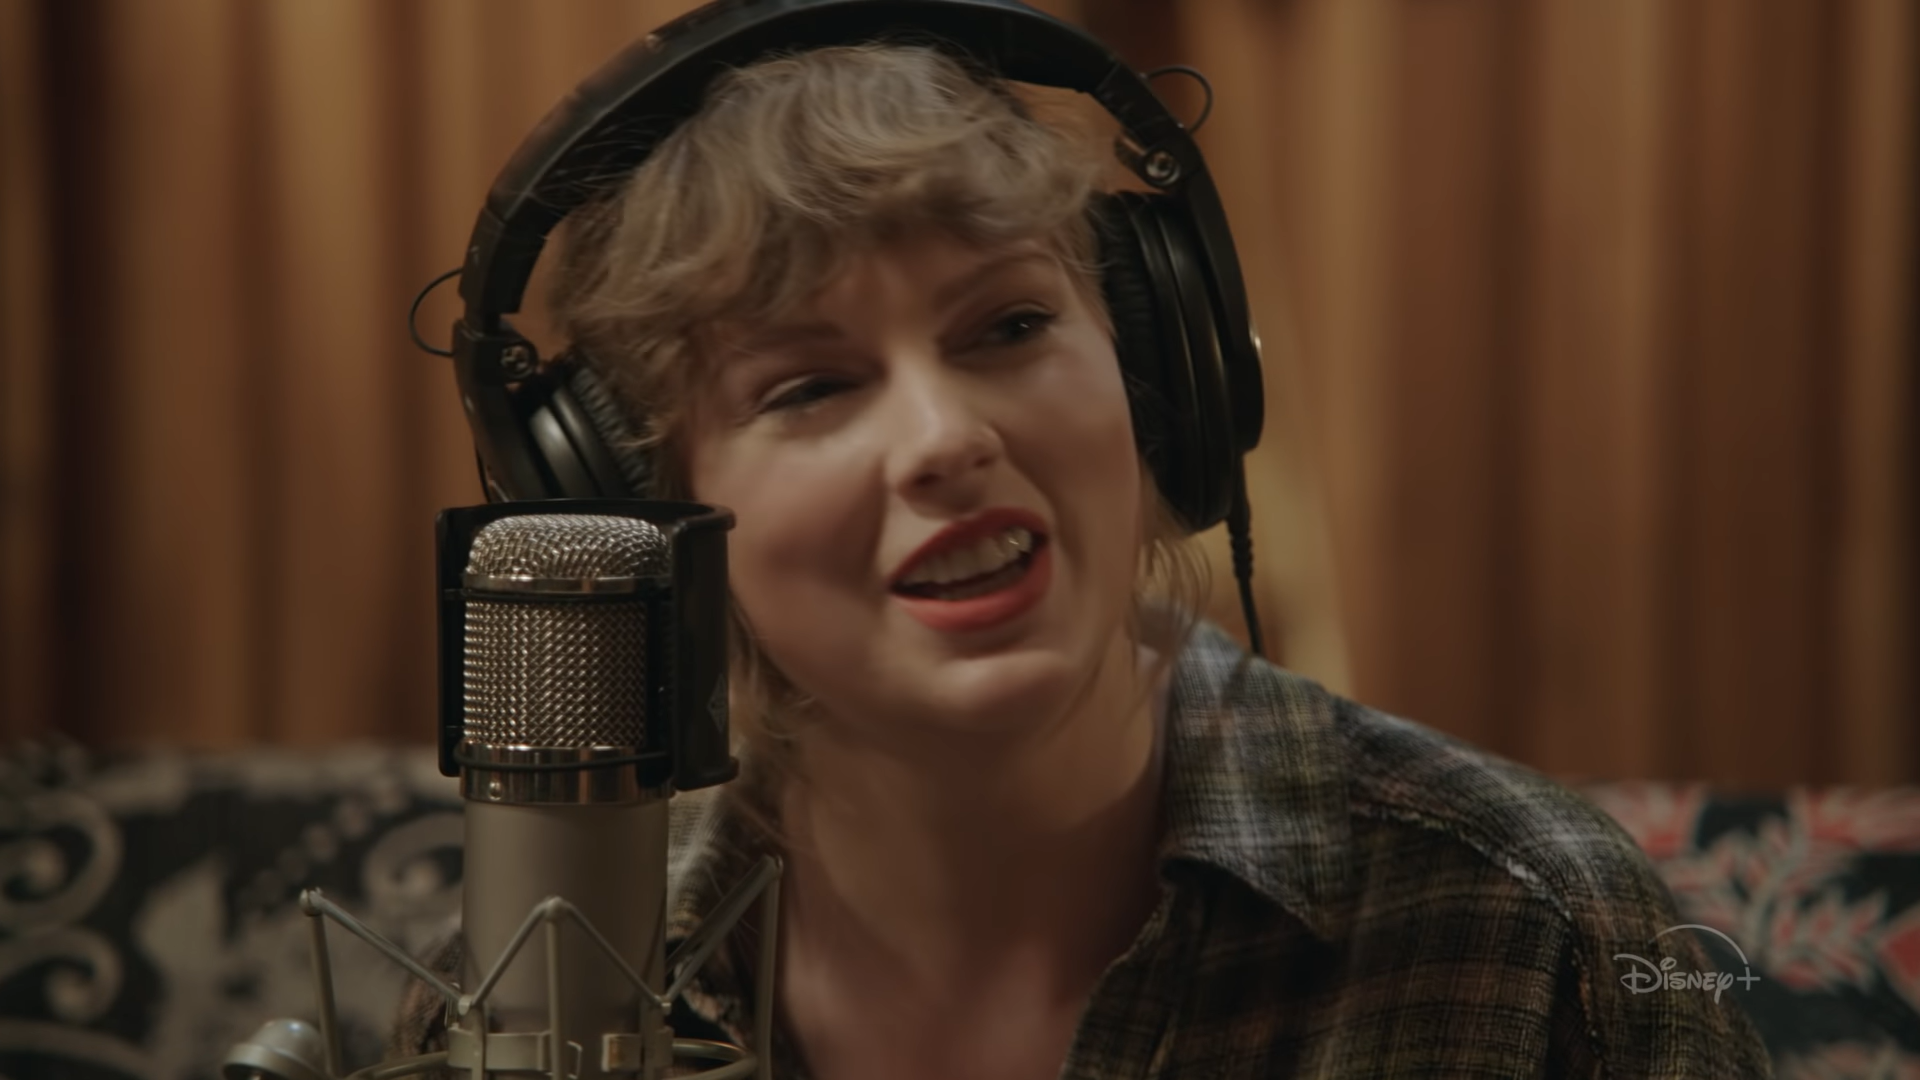 Taylor Swift Folklore Concert Film To Debut On Disney Plus Variety